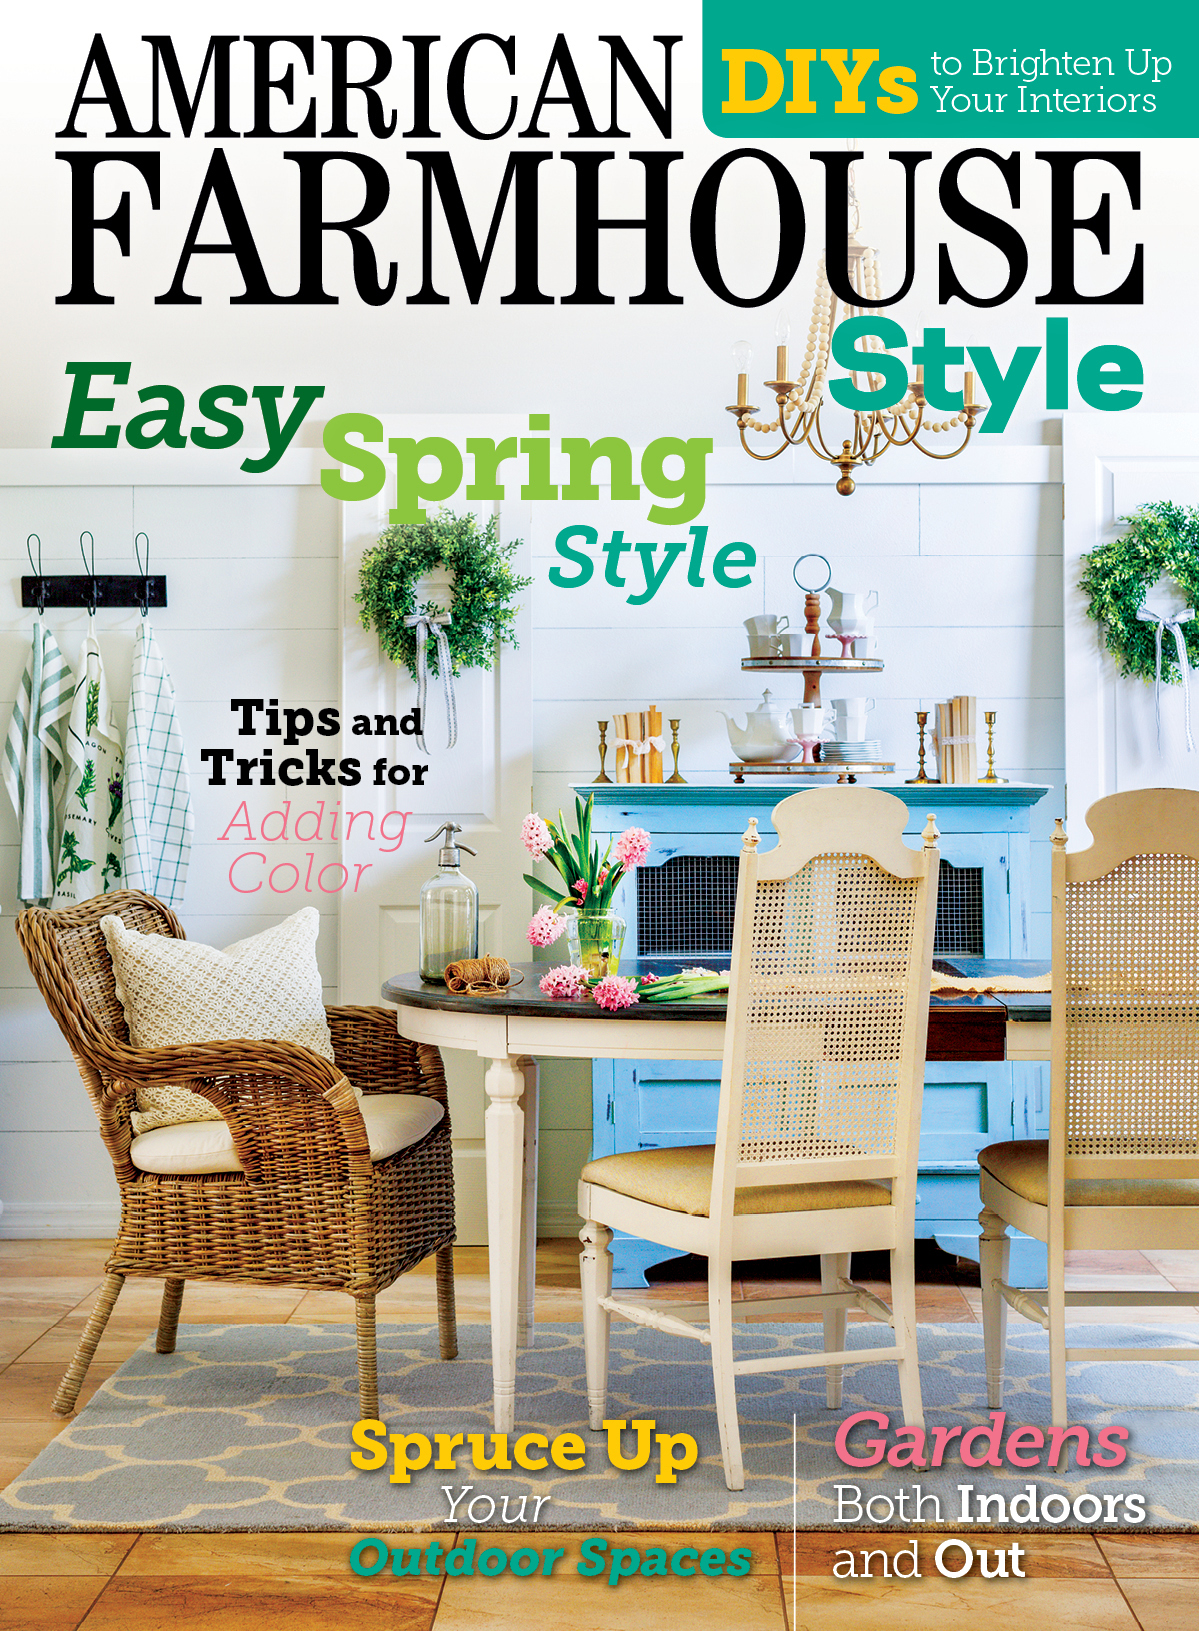 The Lake Austin residence is featured in a 16 page spread in American Farmhouse magazine (March/April 2019) Photographs by Natalie Lacy Lange.